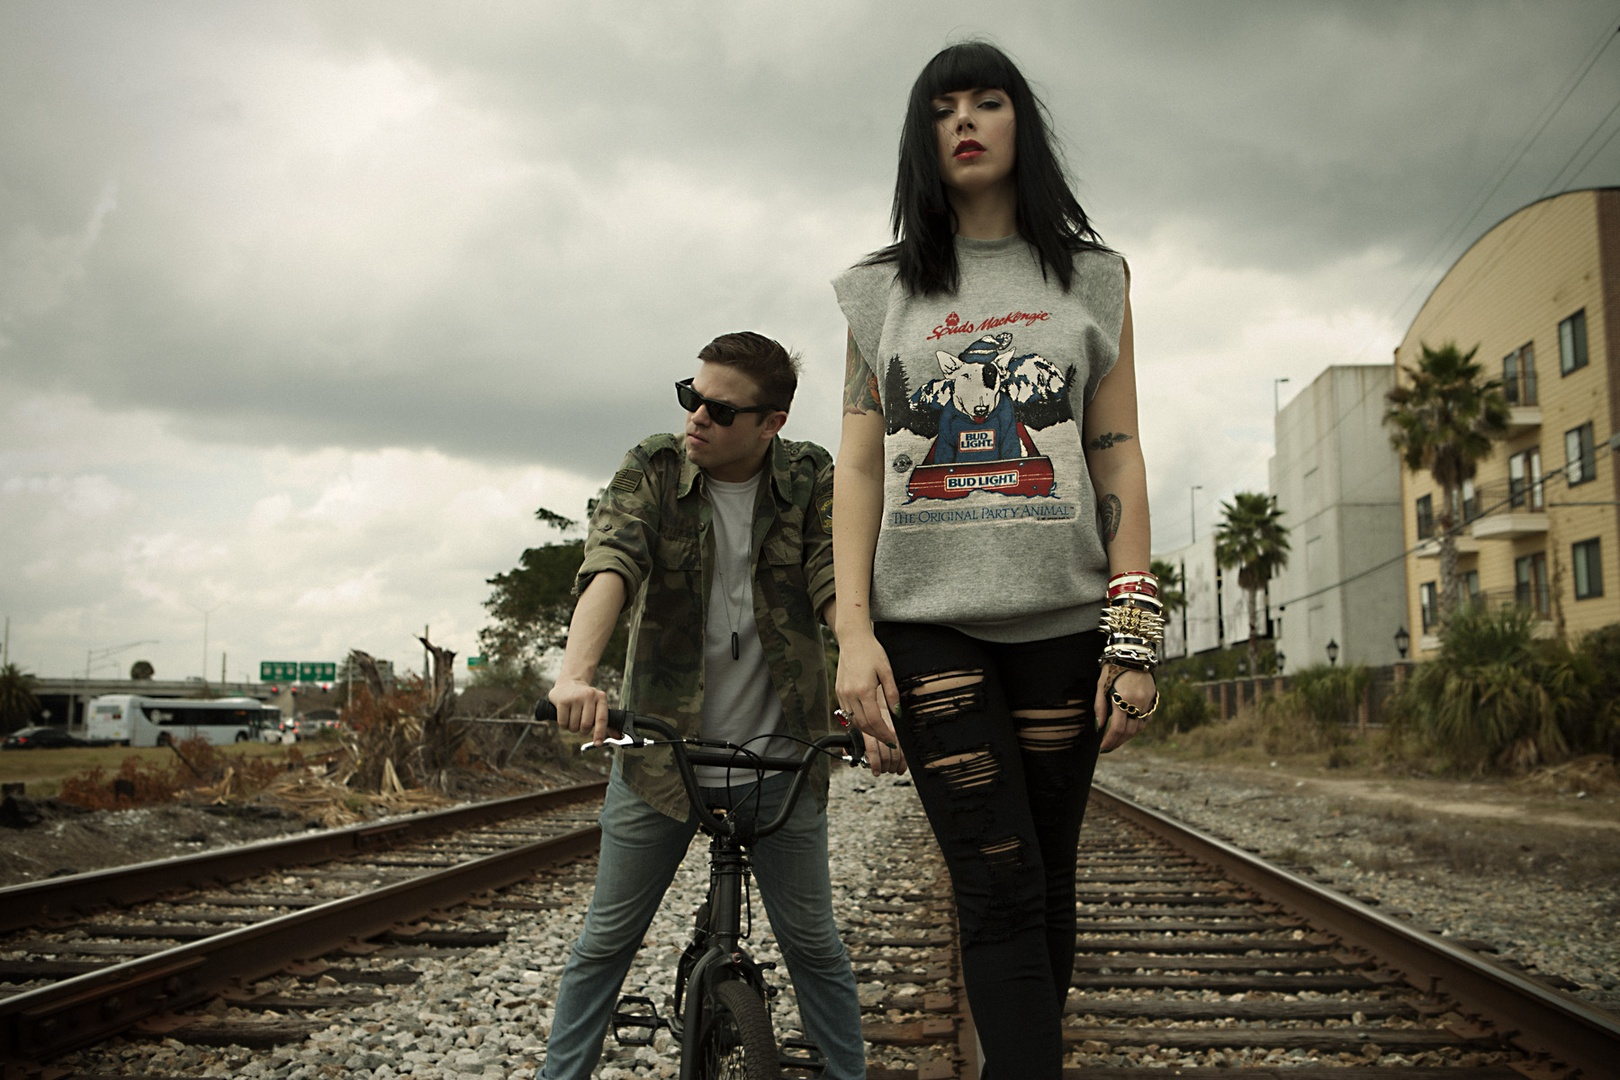 Our interview with Alexis from Sleigh Bells, the bands forthcoming release 'Jessica Rabbit', comes out November 11th.